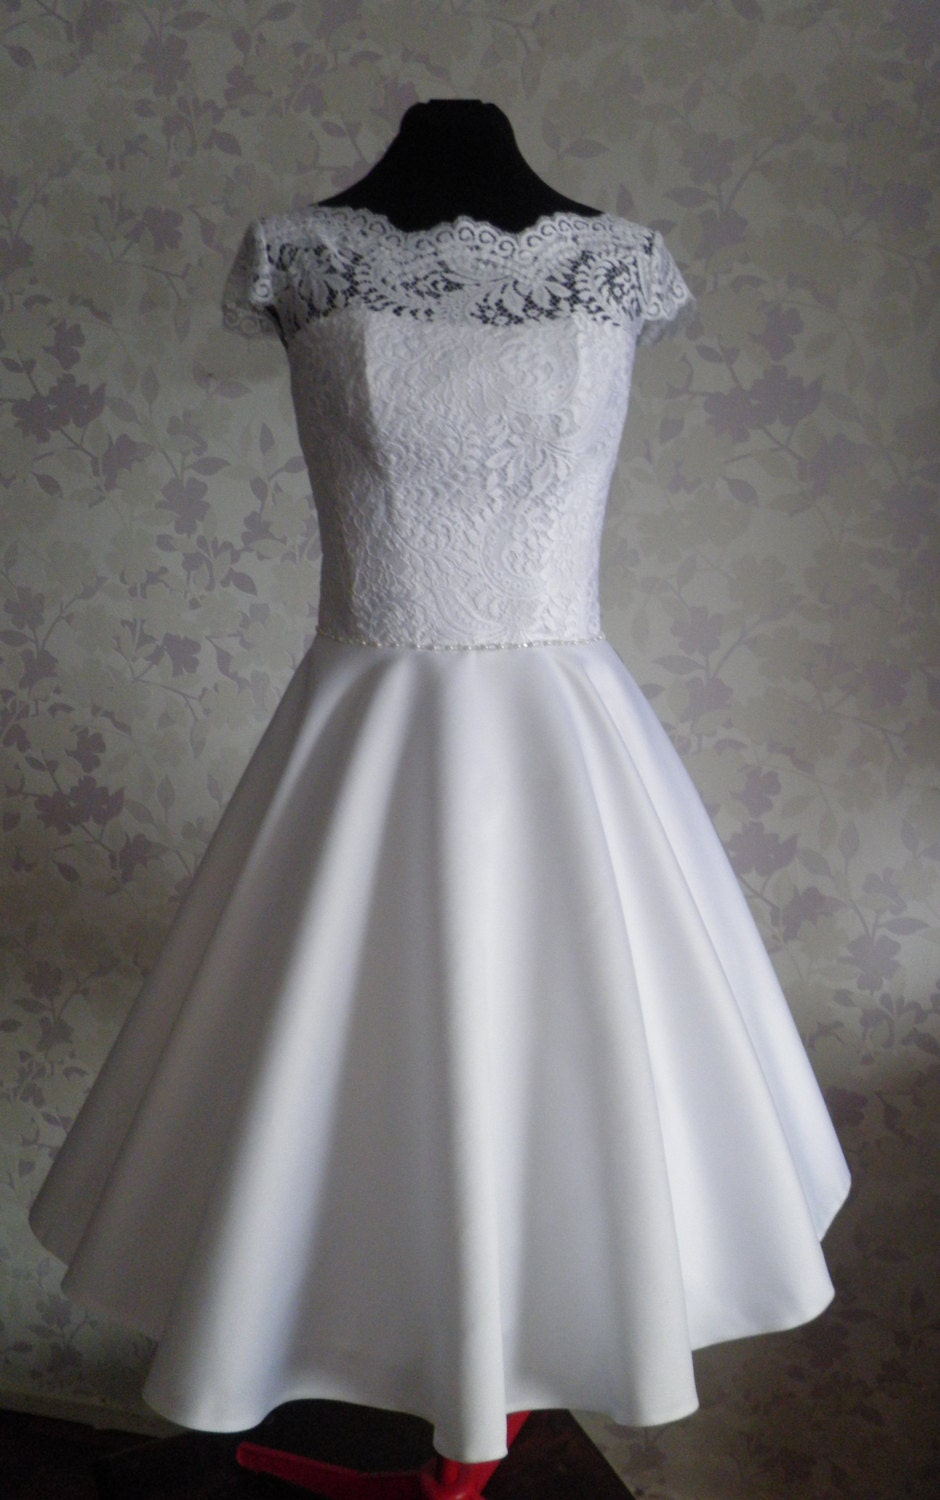 Vintage inspired wedding dress in style of audrey hepburn 1950 for Audrey hepburn inspired wedding dress